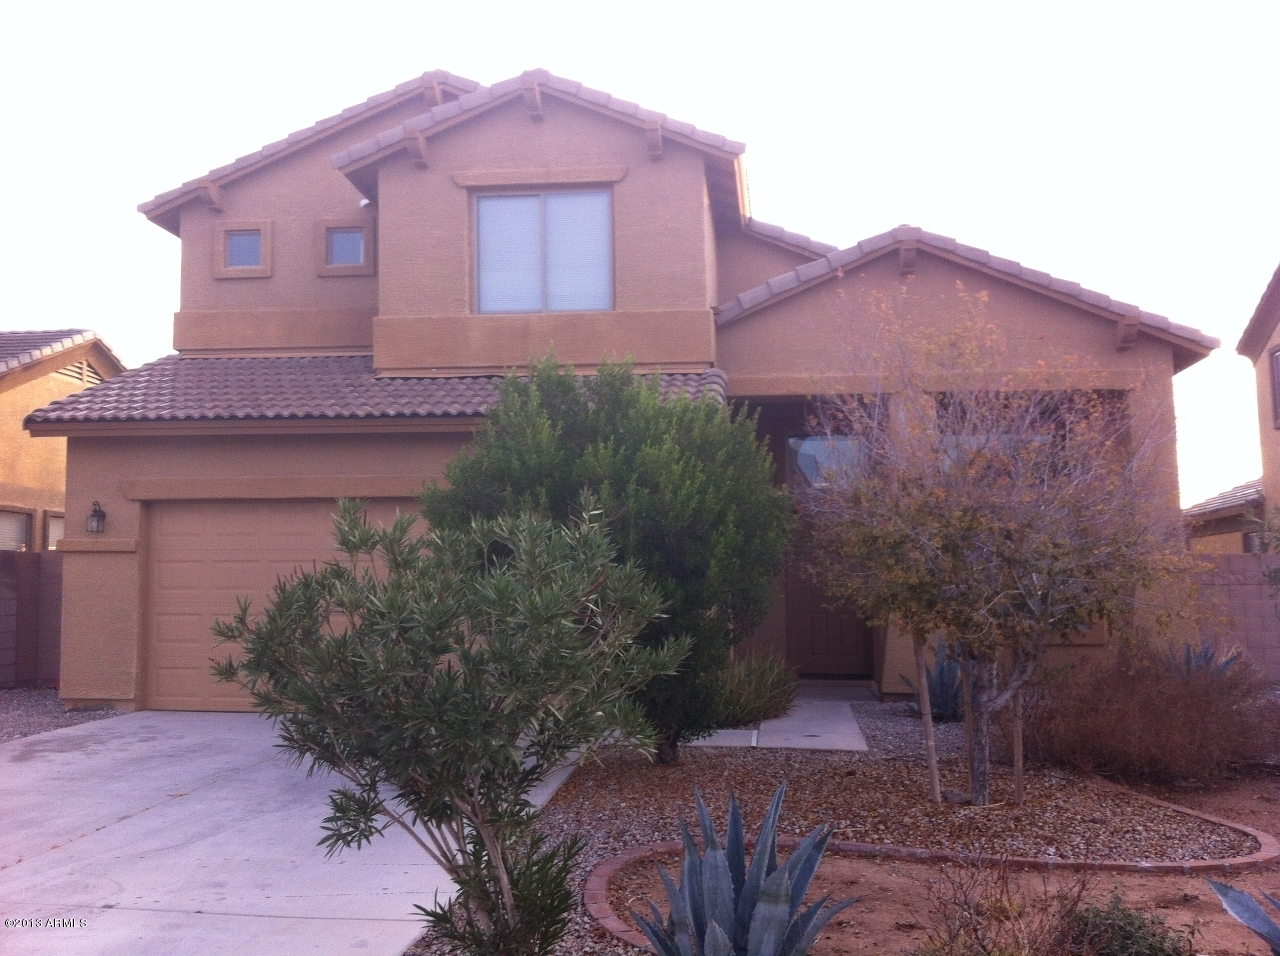 MLS 6100250 Tolleson Metro Area, Tolleson, AZ 85353 Tolleson Homes for Rent